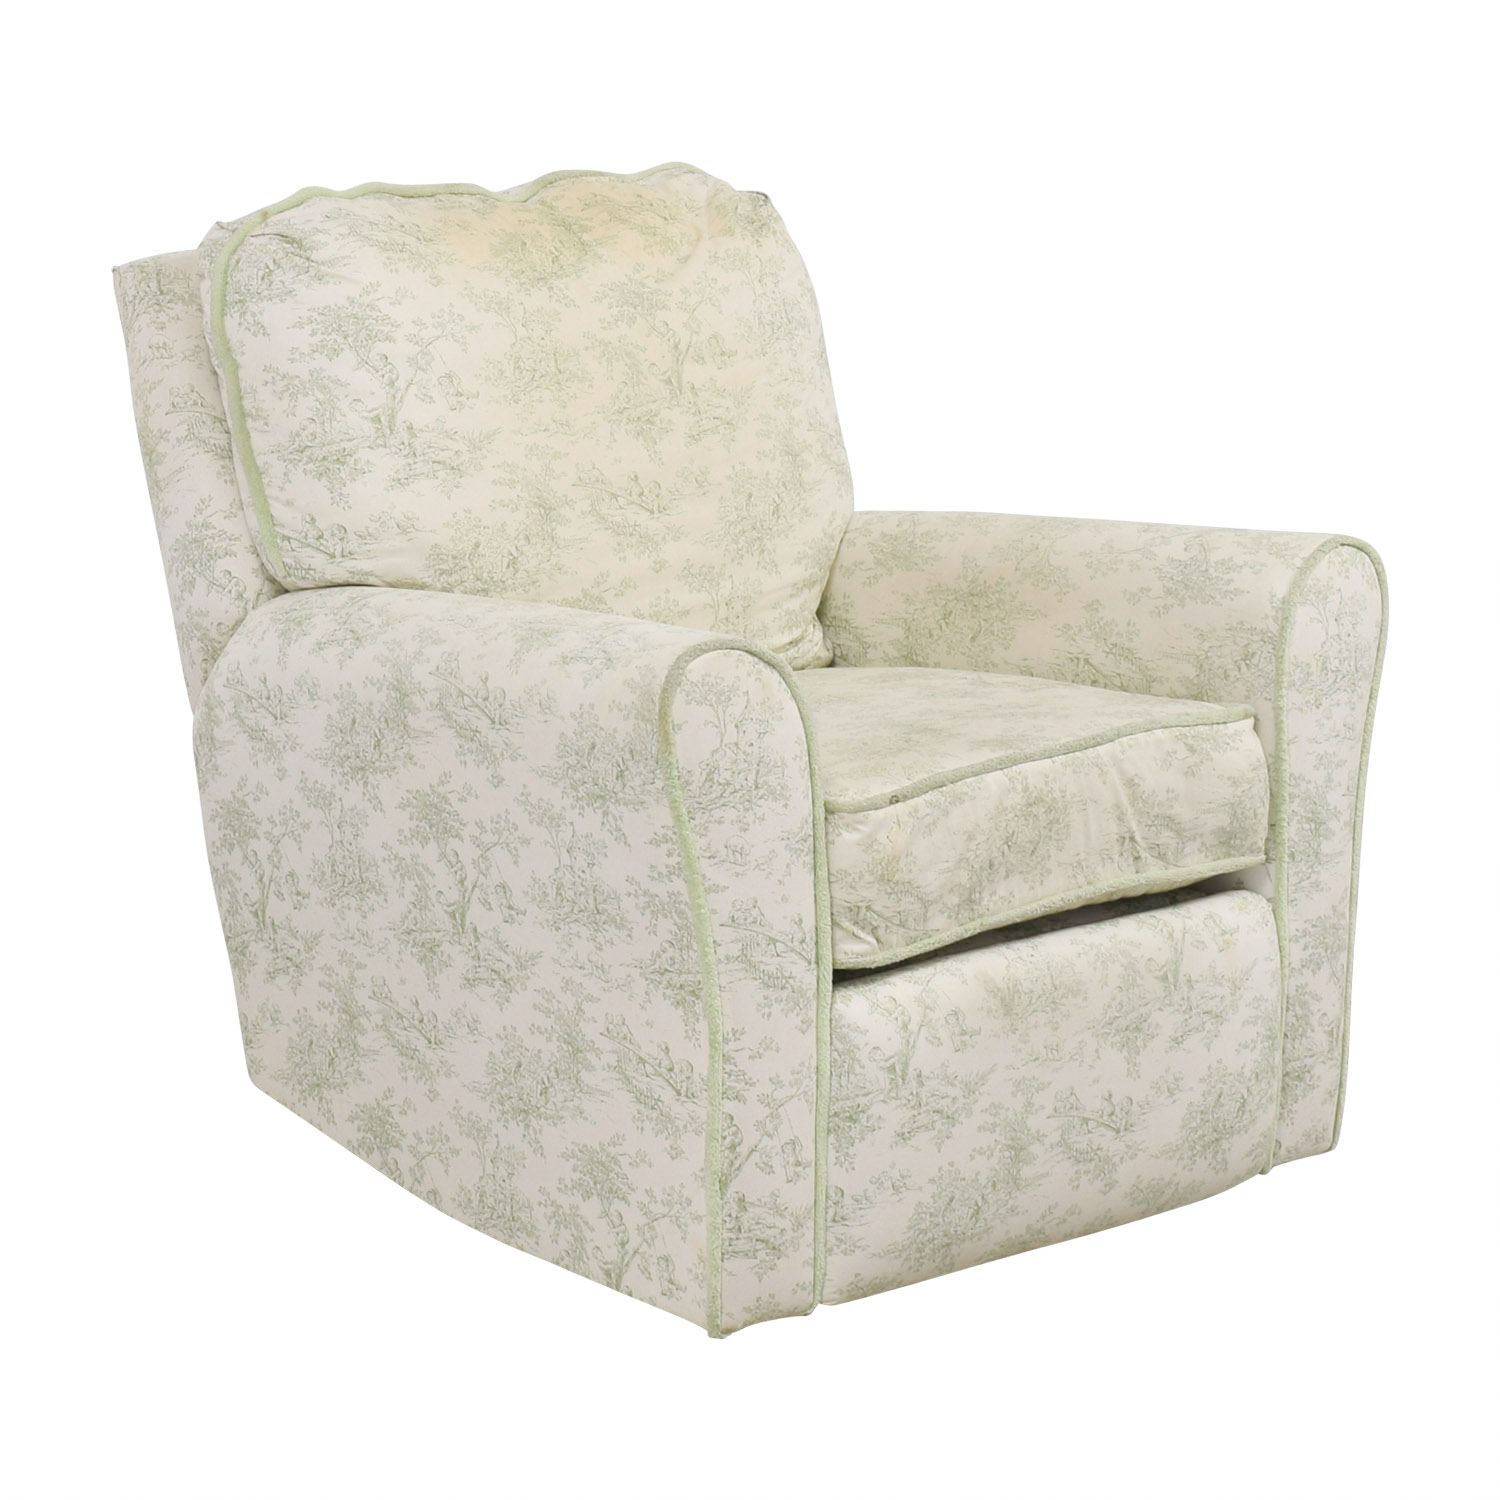 accent chair recliner amish made adirondack chairs from ohio 90 off bellini baby children s playground white and green rocking